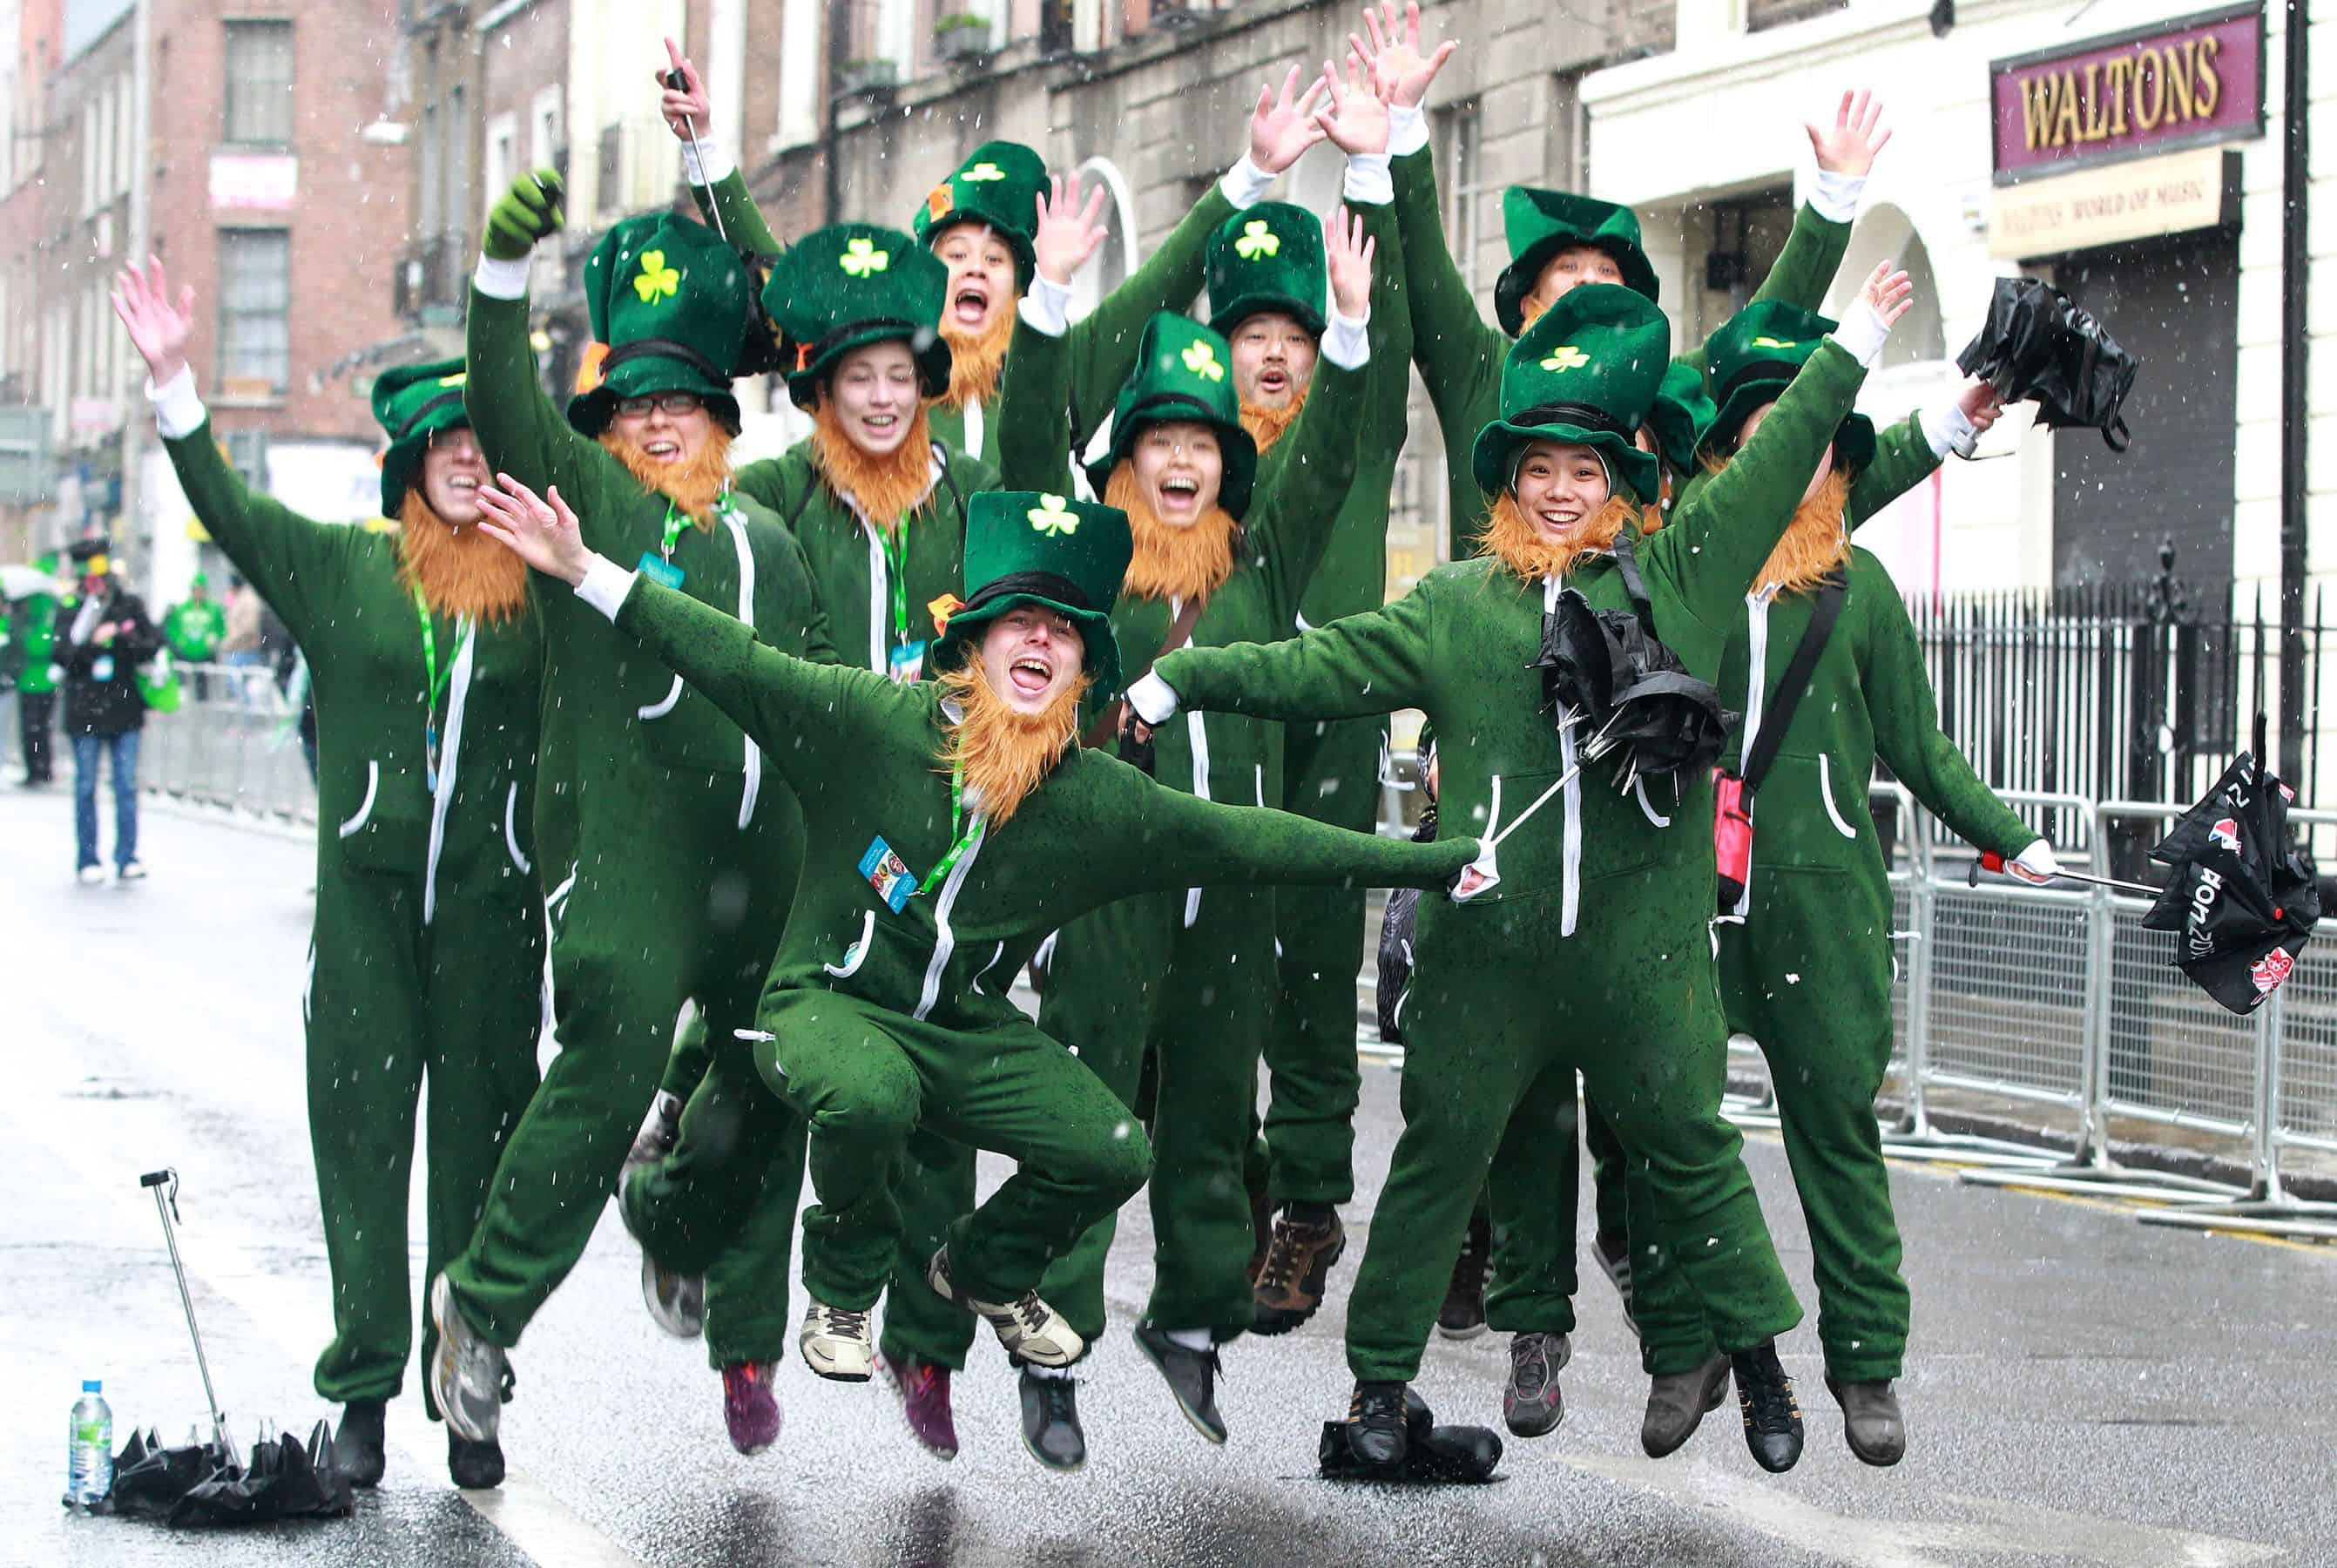 Parade goers dressed as leprechauns jump